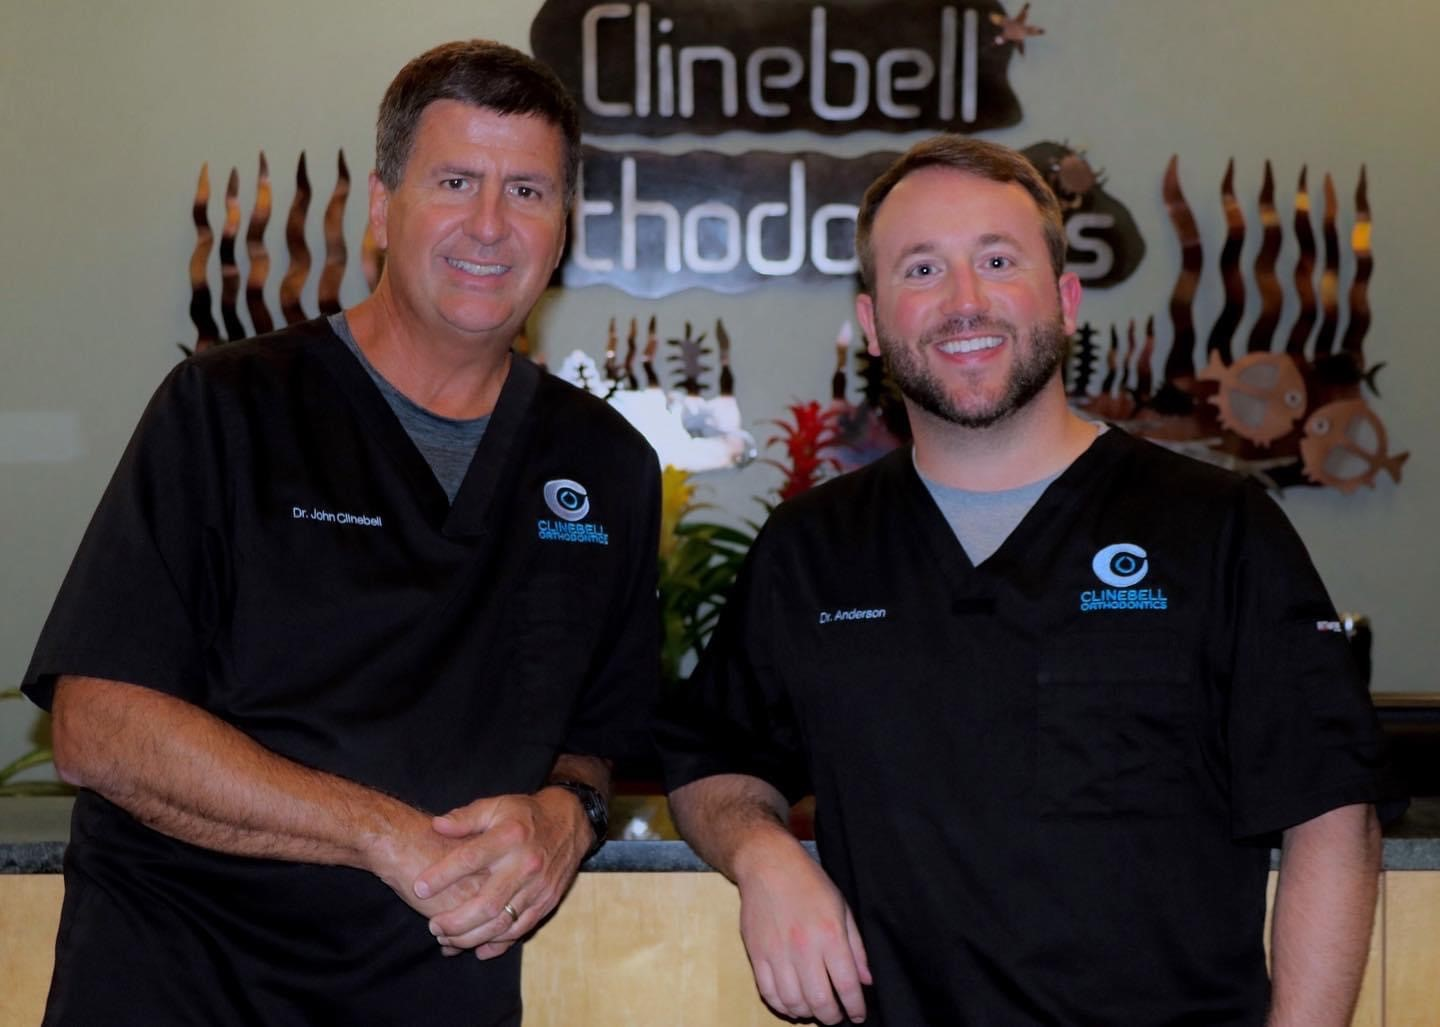 Dr Clinebell and Dr. Anderson  Clinebell Orthodontics Adults and Children braces Tucker Decatur Atlanta GA